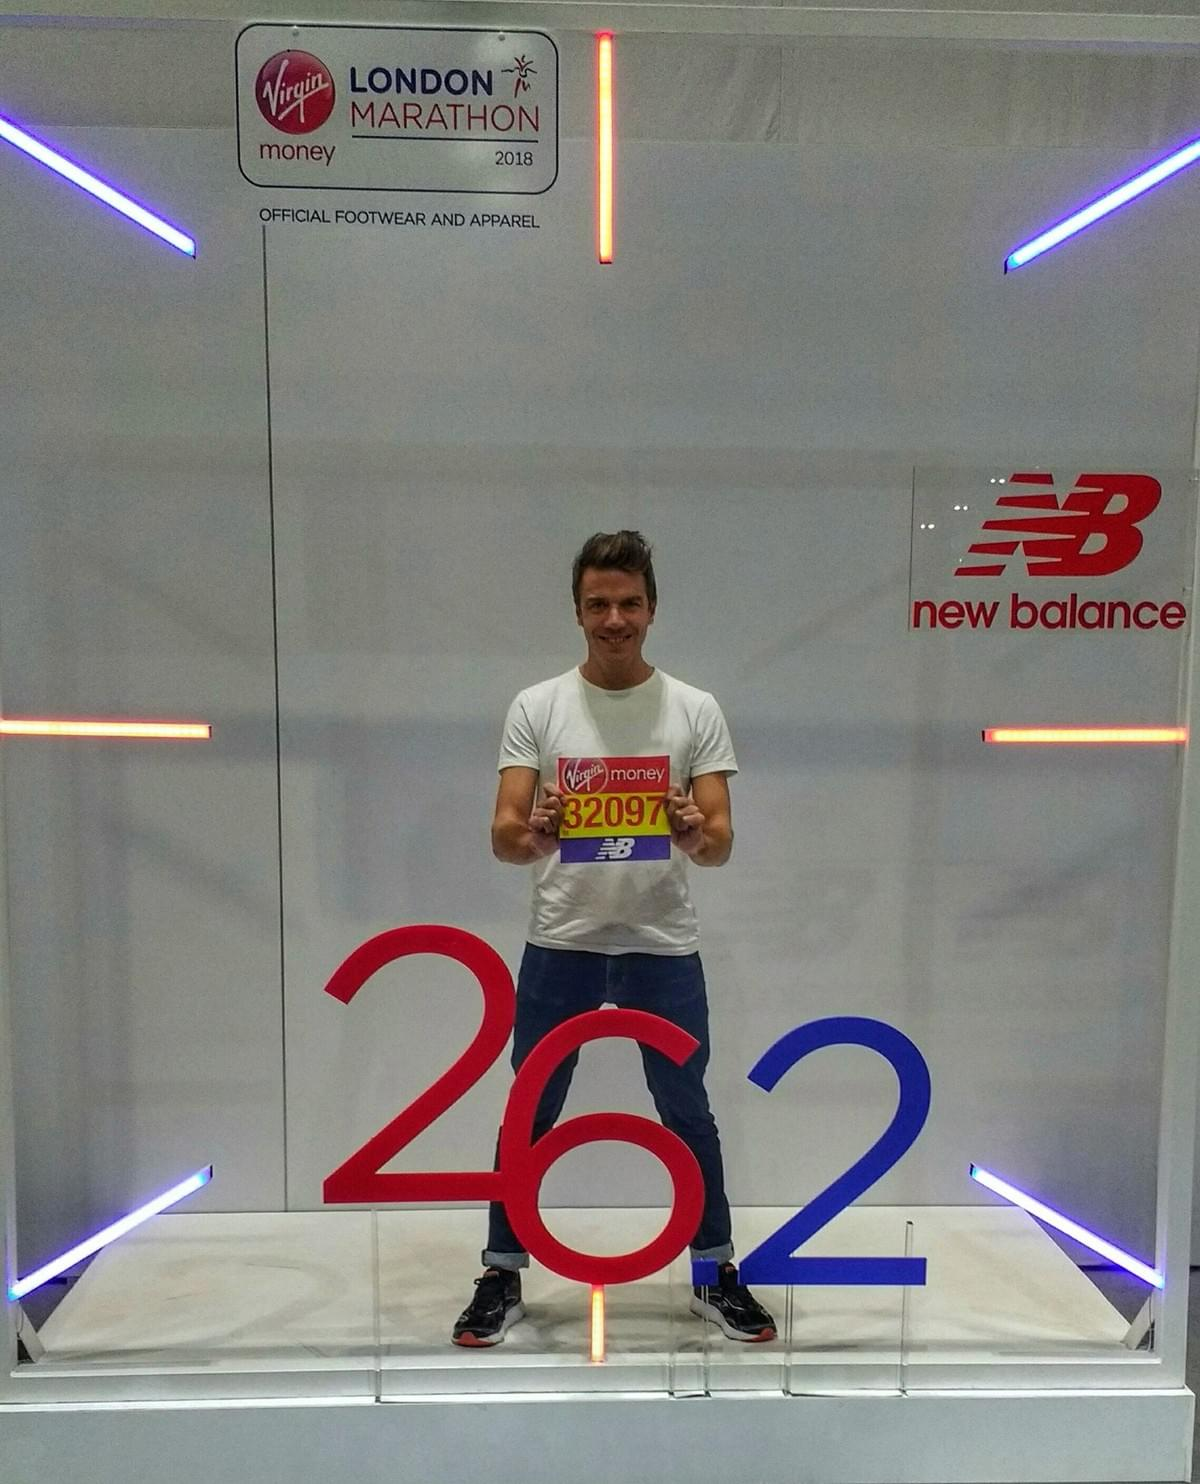 race number photo at London Marathon expo, ExCel London